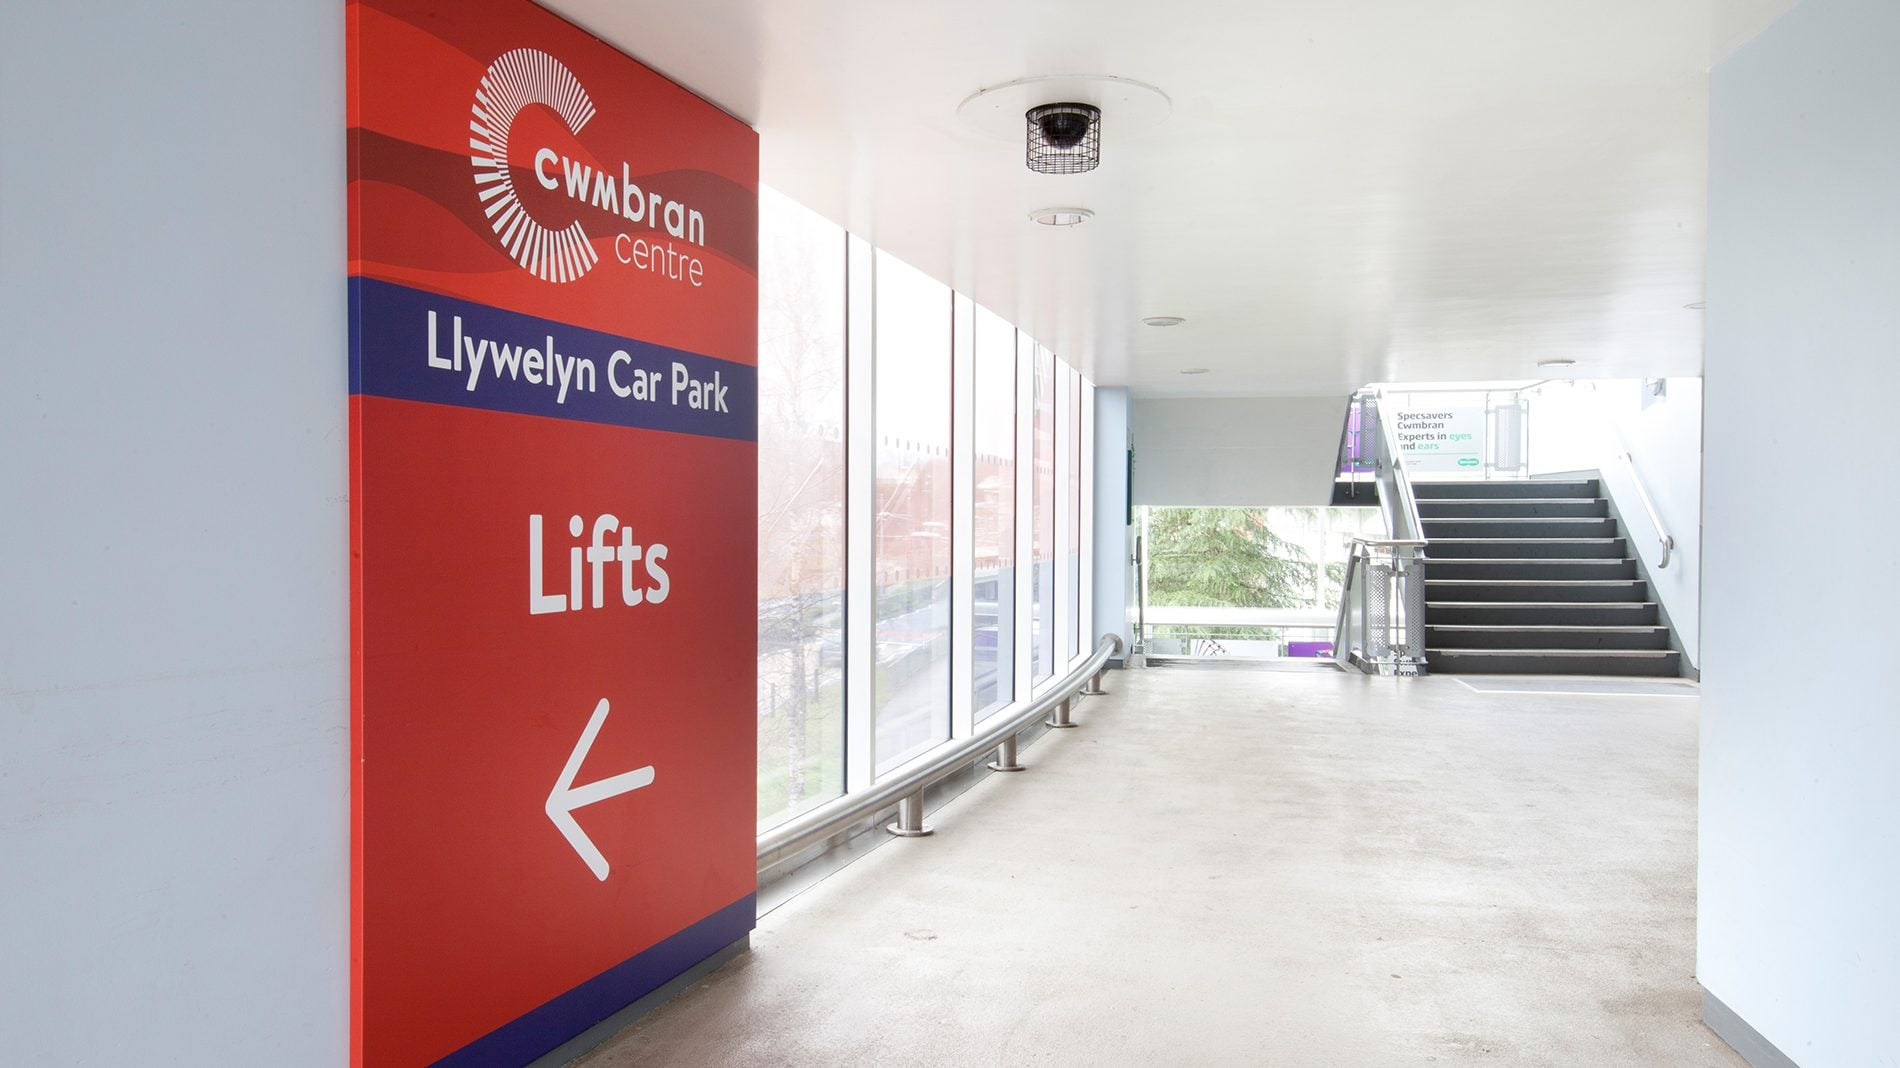 Cwmbran castle branded interior signage